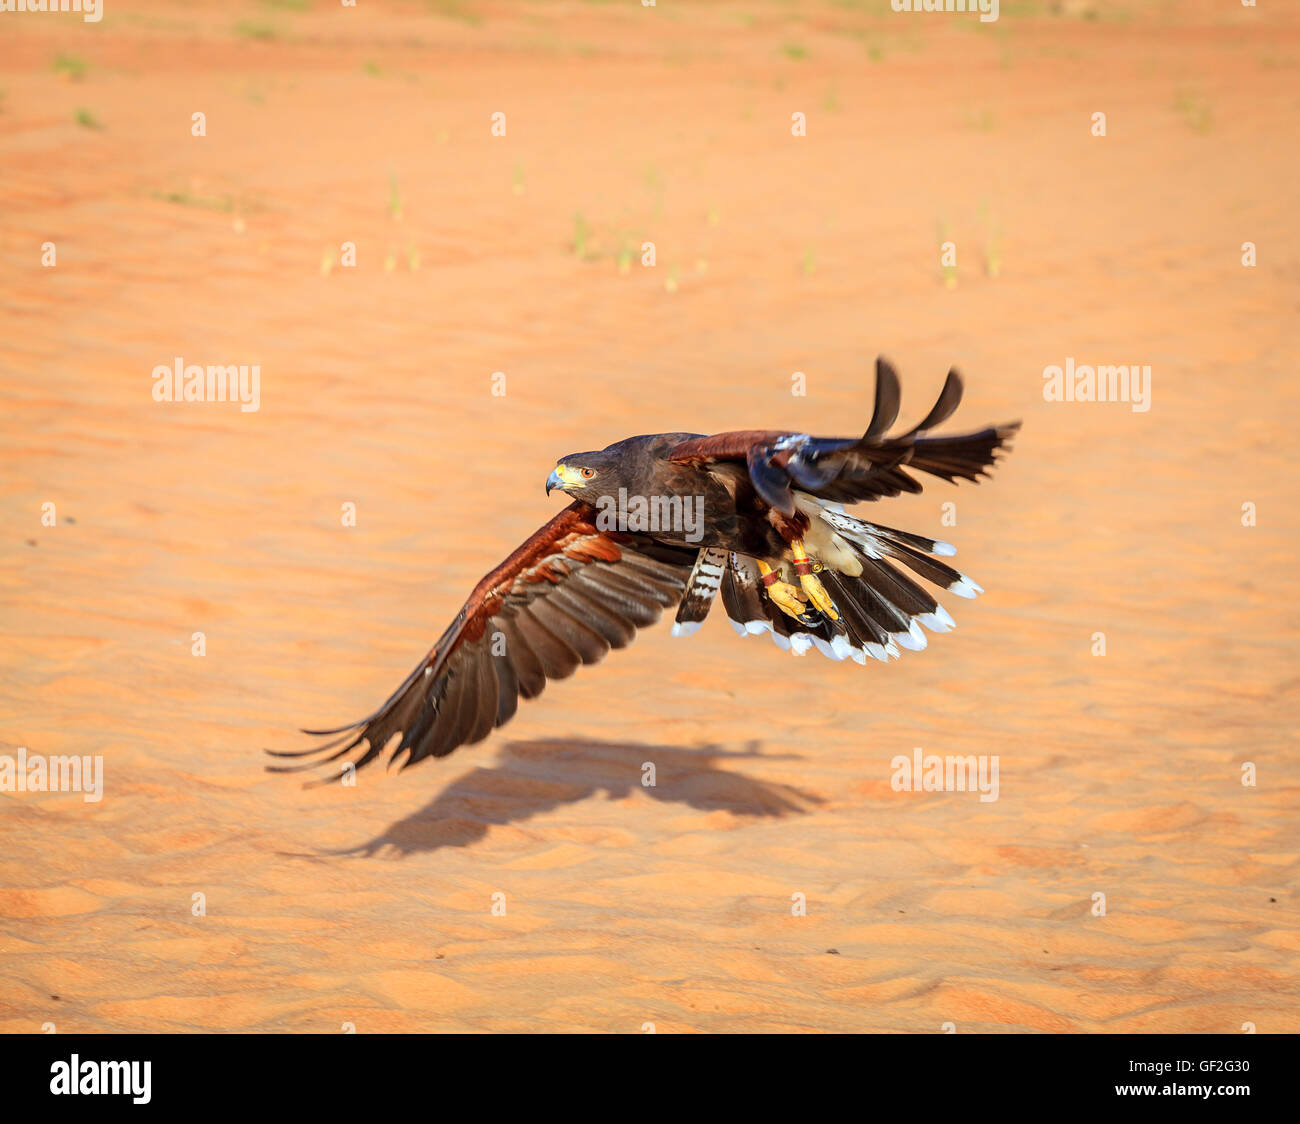 Harris Hawk flying over dunes in Dubai Desert Conservation Reserve, UAE - Stock Image